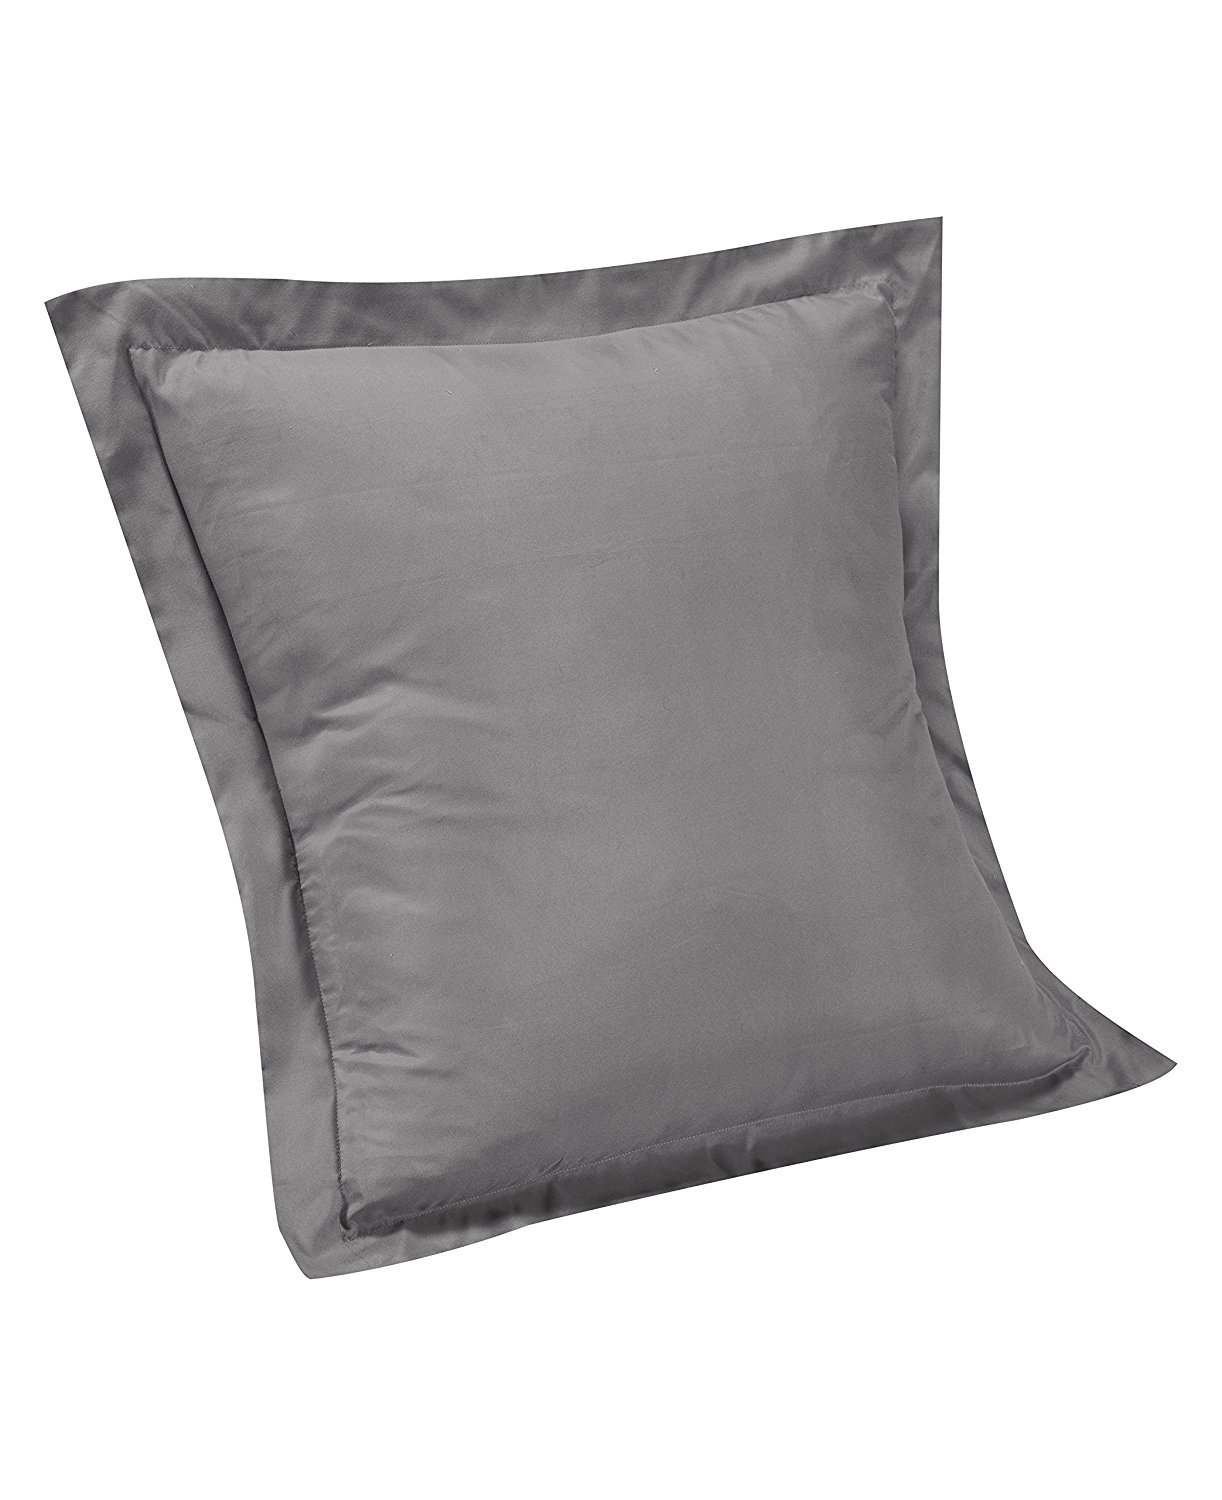 400 Thread Count Single-Ply Soft Egyptian Cotton Solid/Plain European Square Tailored pillow shams Cushion Cover 26 x 26 Inch, {Available in 21 Color } (Dark Grey/Elephant Grey Solid)